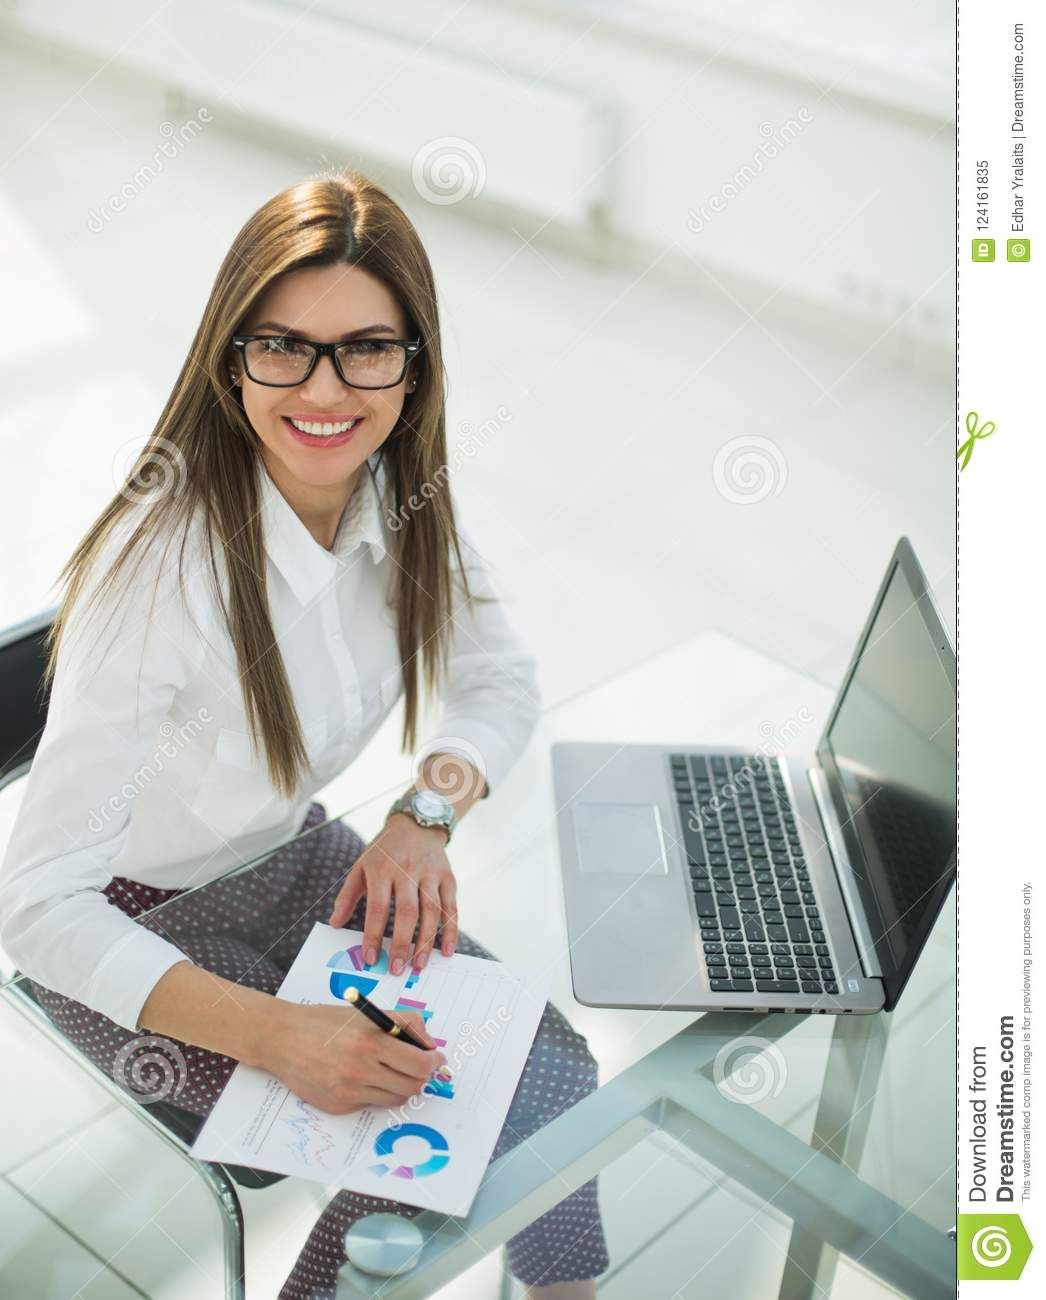 Business woman working by checking financial report